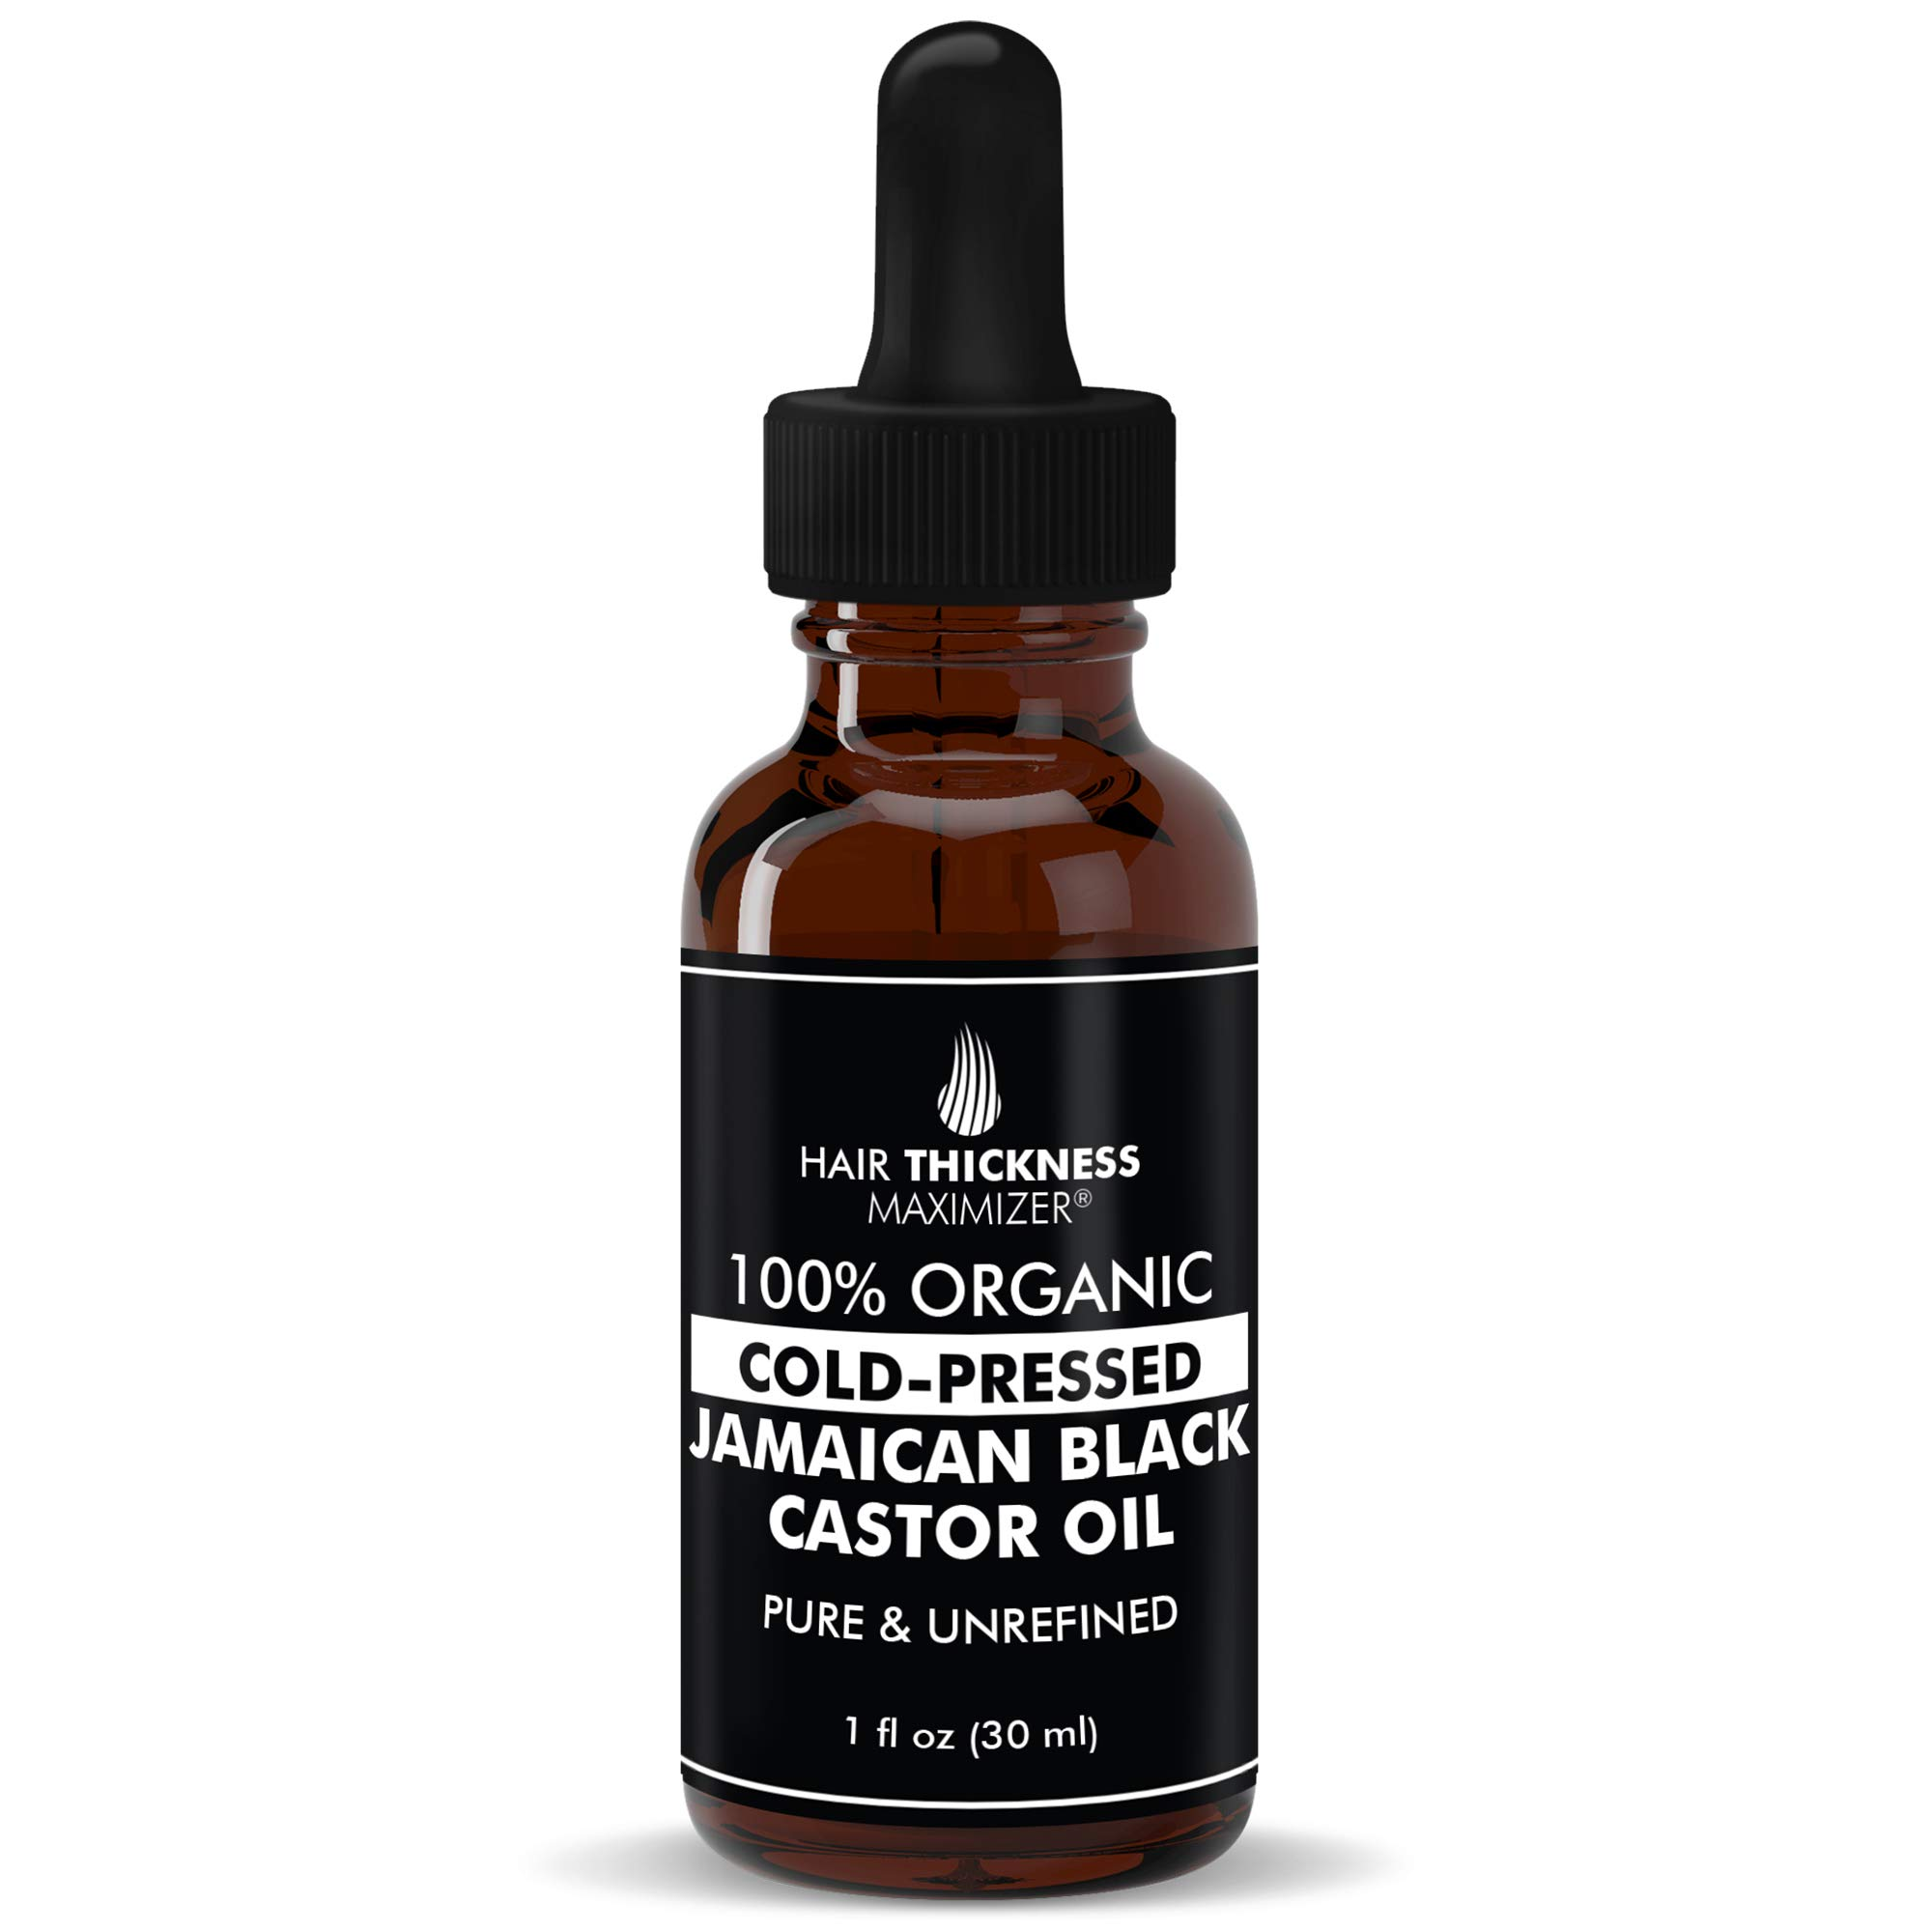 100% Organic Cold-Pressed Jamaican Black Castor Oil (1fl Oz) By Hair Thickness Maximizer. PURE + UNREFINED Oils For Thickening Hair, Eyelashes, Eyebrows. Avoid Hair Loss, Thinning Hair for Men + Women